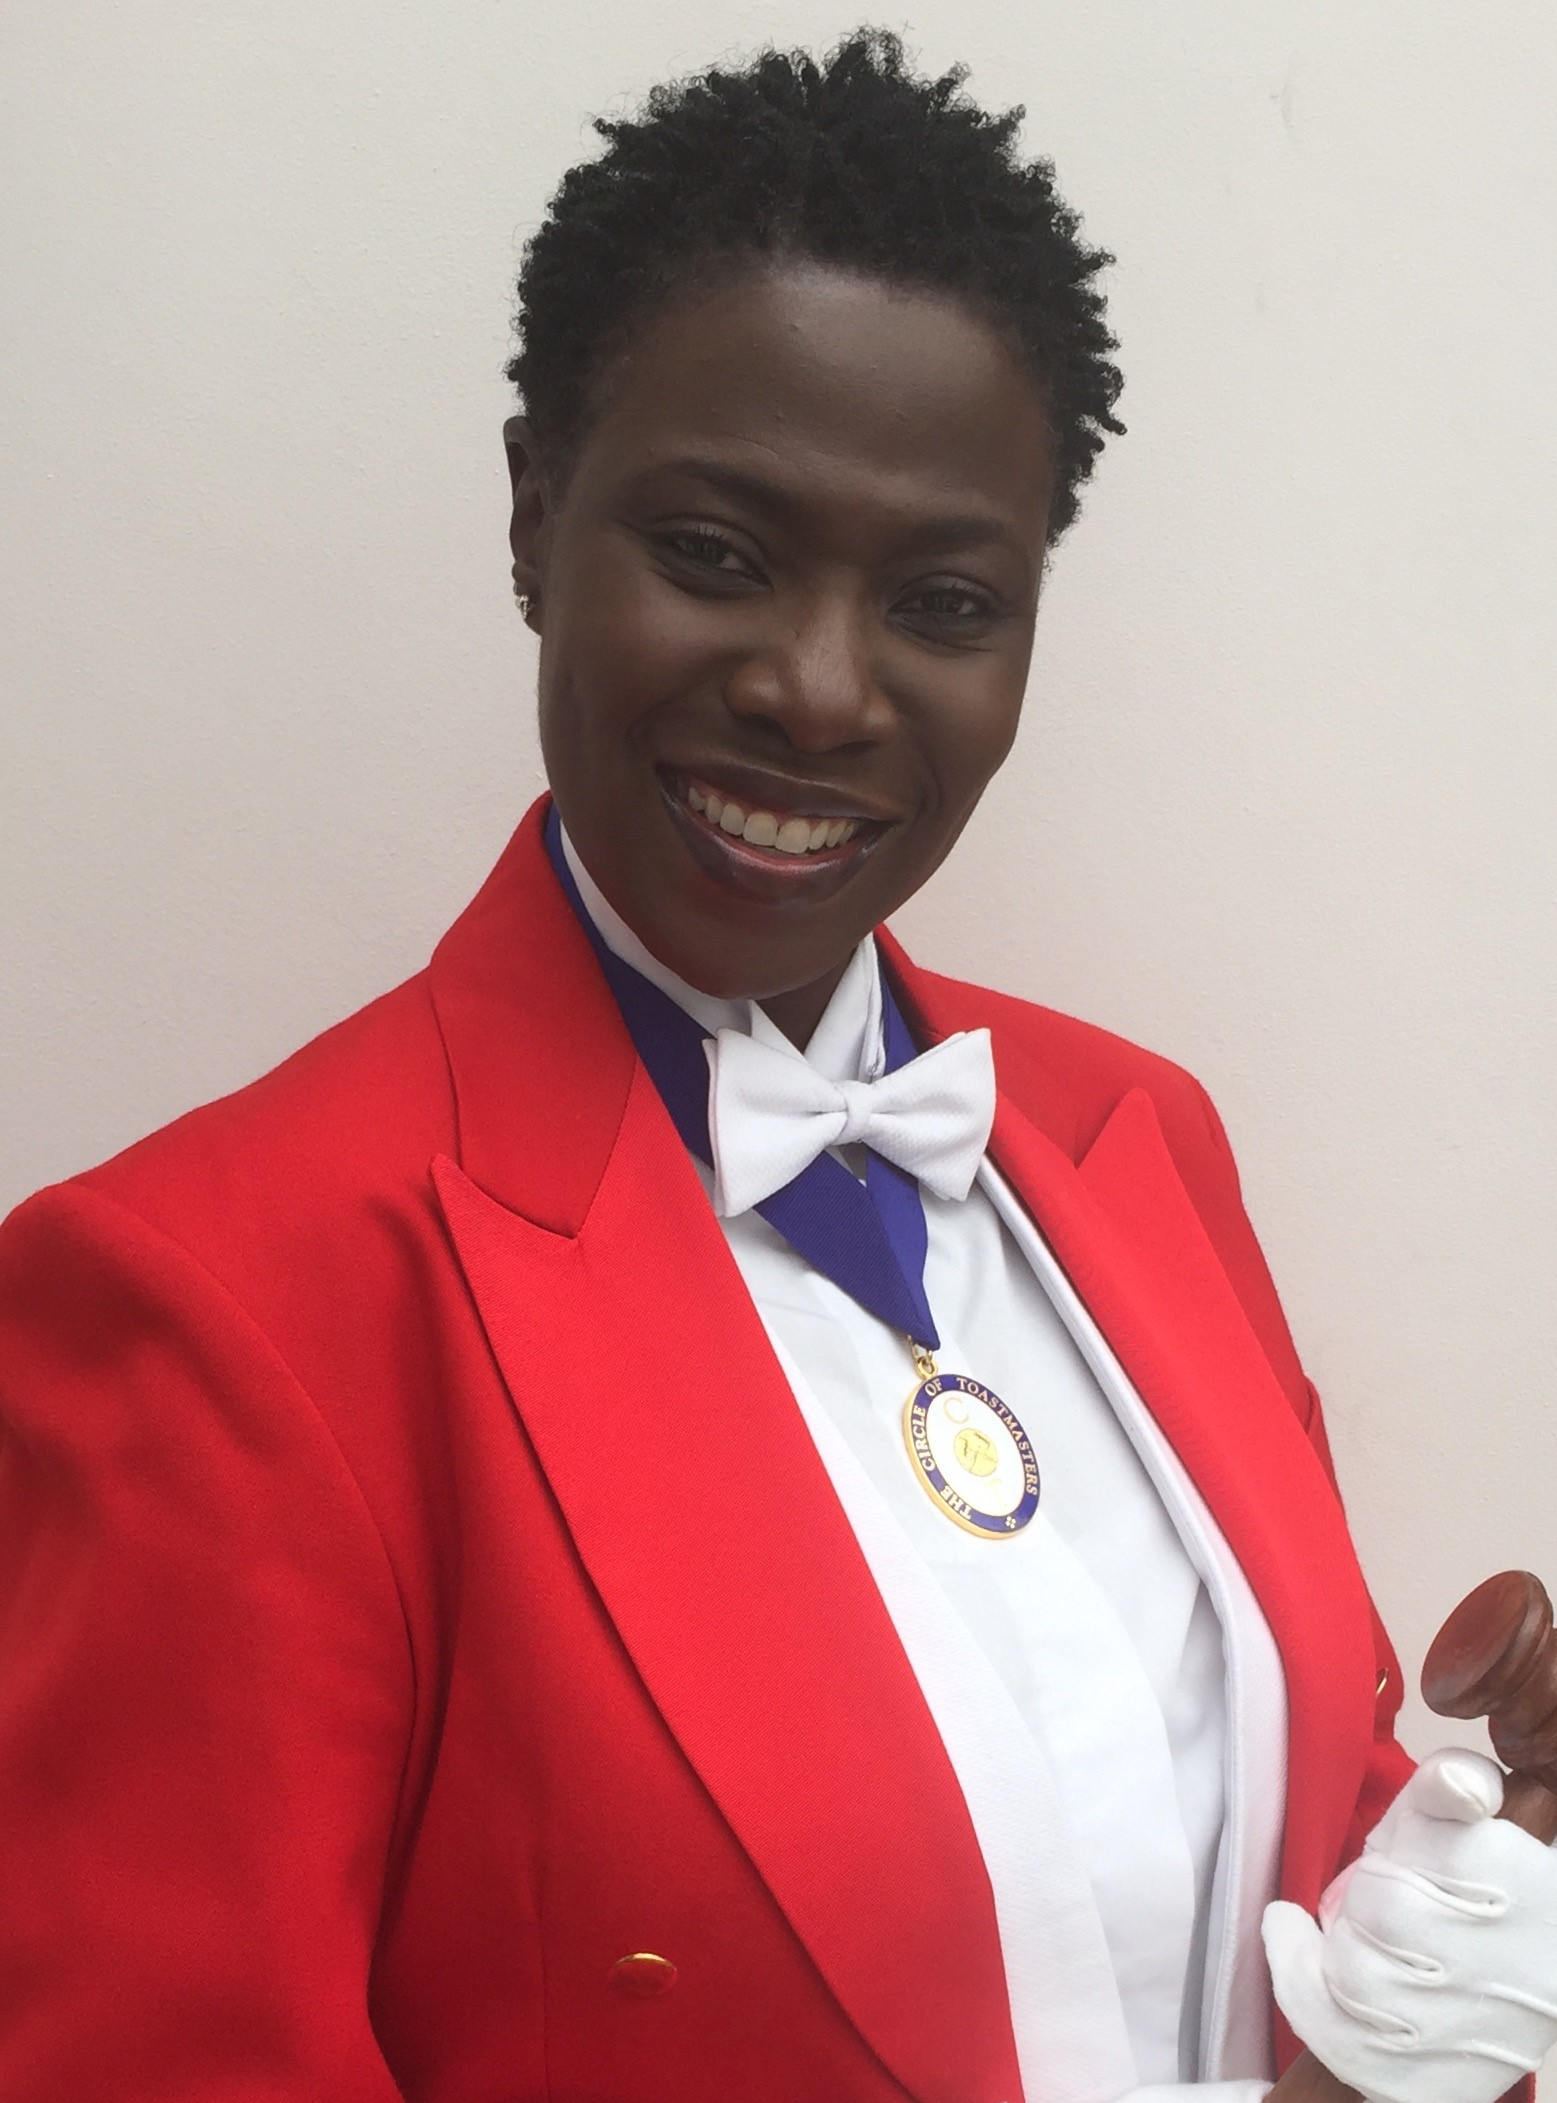 Red coat toastmaster in London